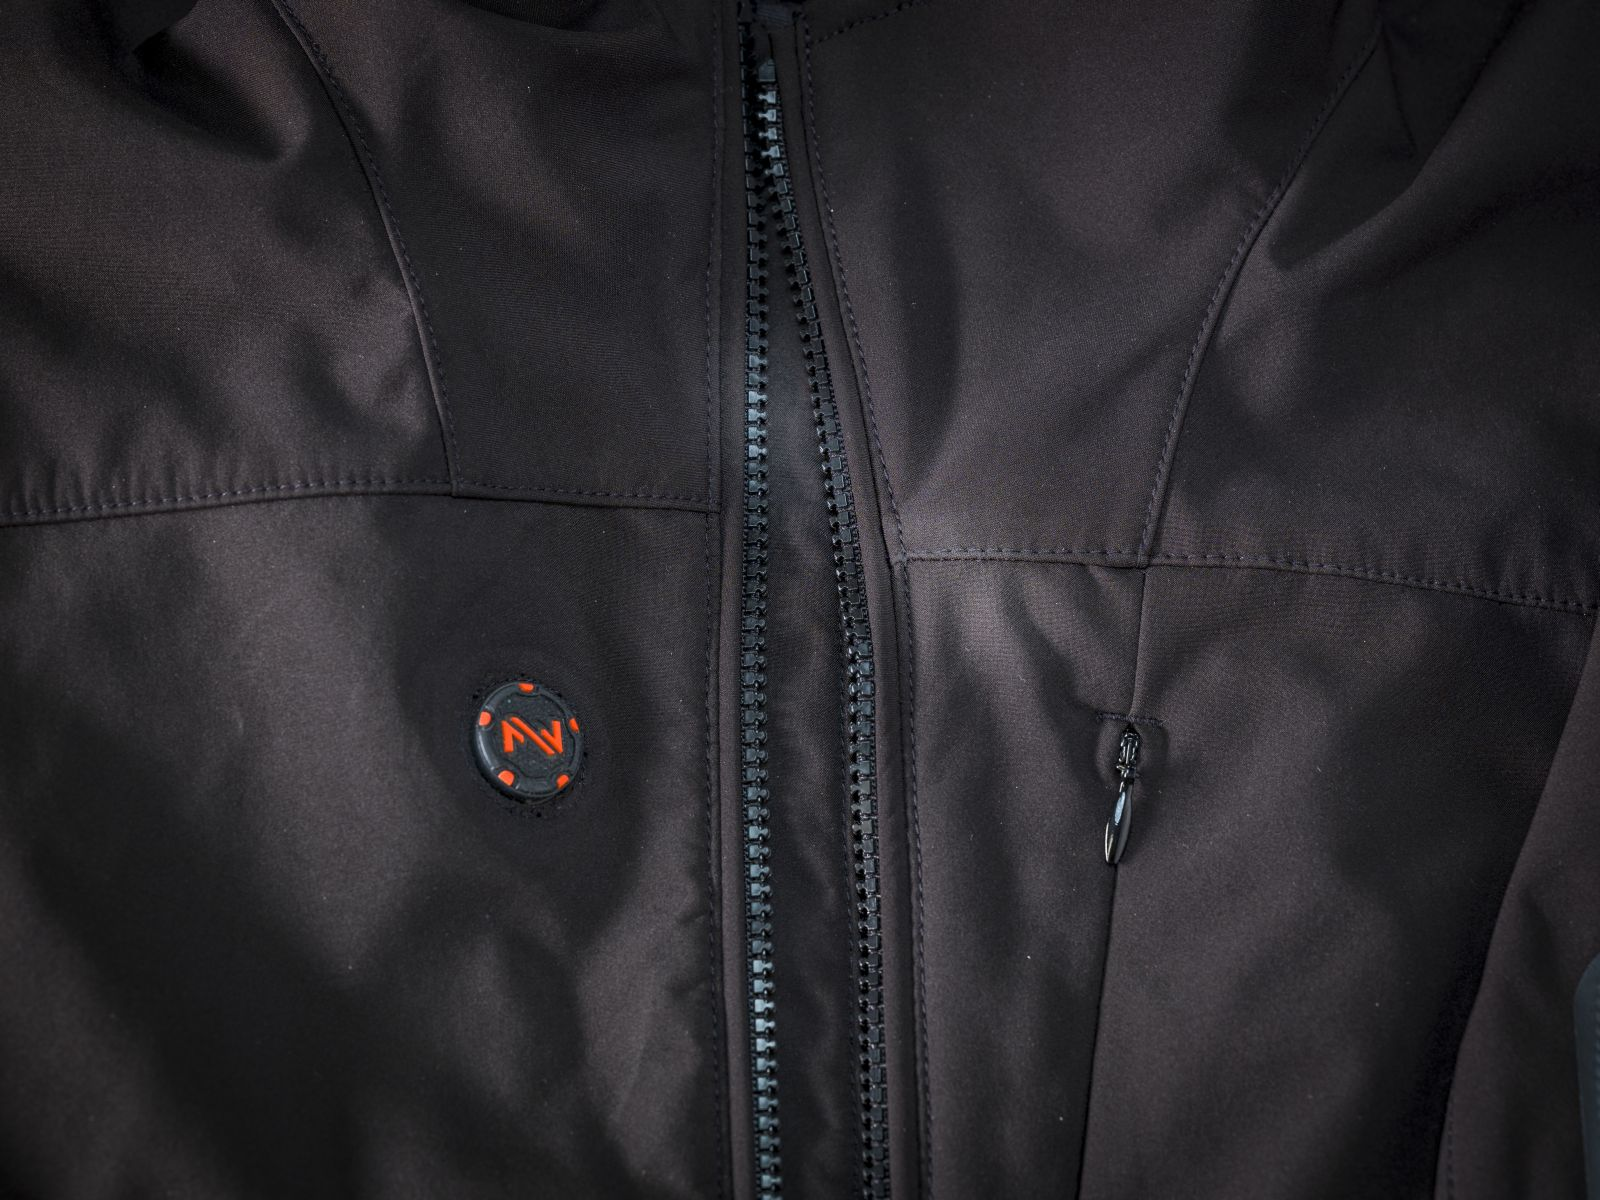 SXT Mobile Warming Heated Jacket